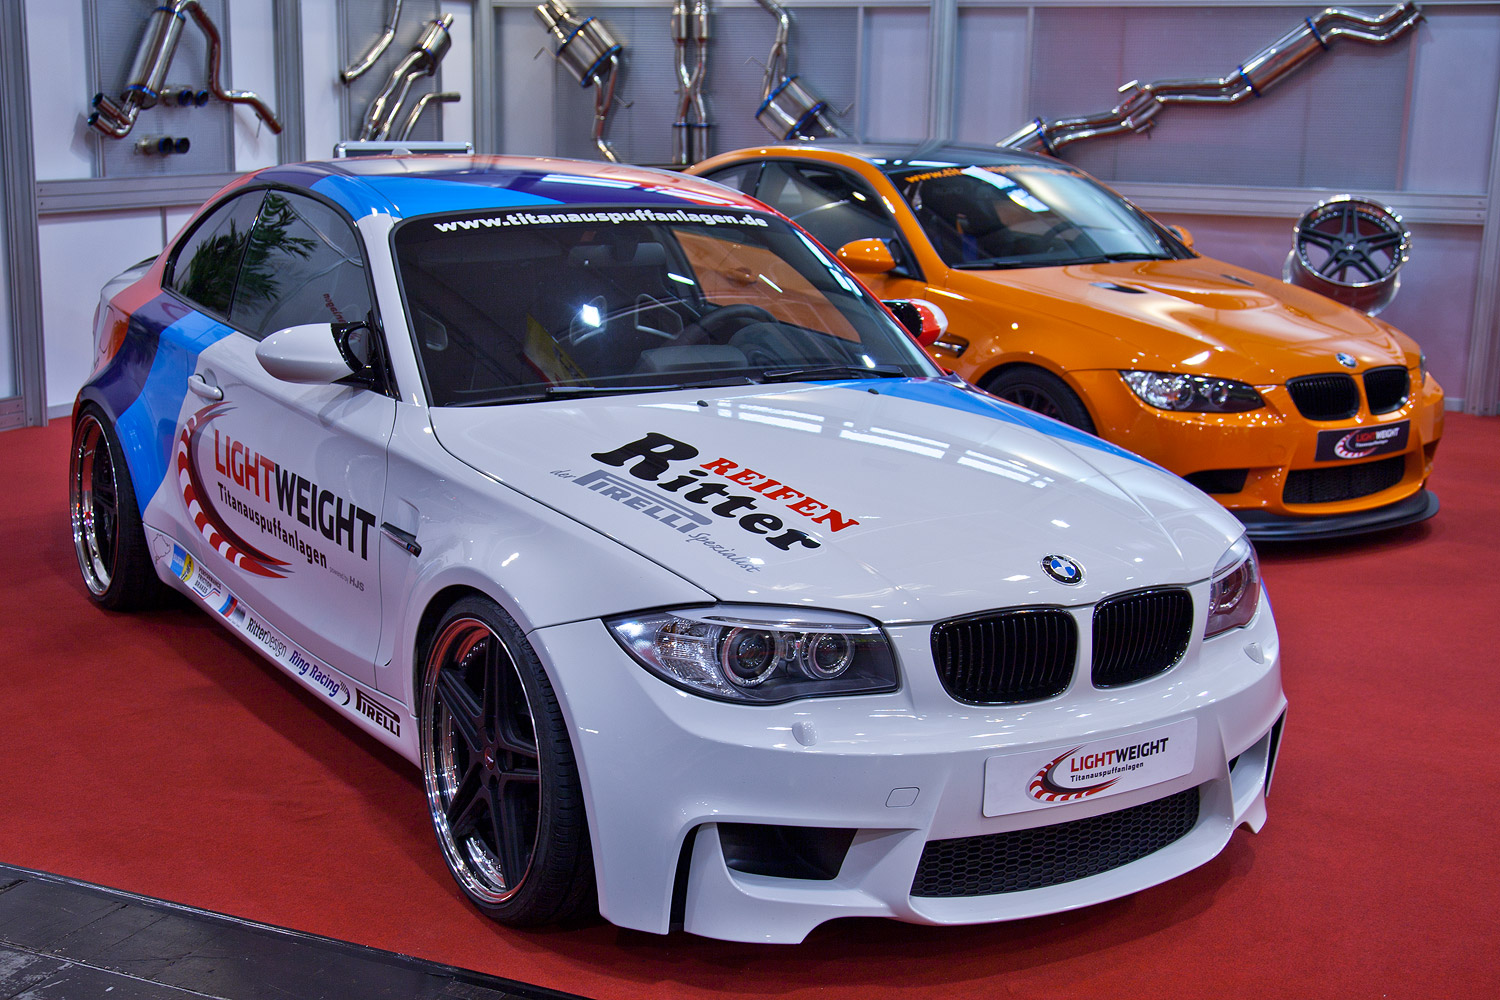 foto bmw 1er m coup e82 by lightweight 401 ps bei u min 555 nm bei u min. Black Bedroom Furniture Sets. Home Design Ideas